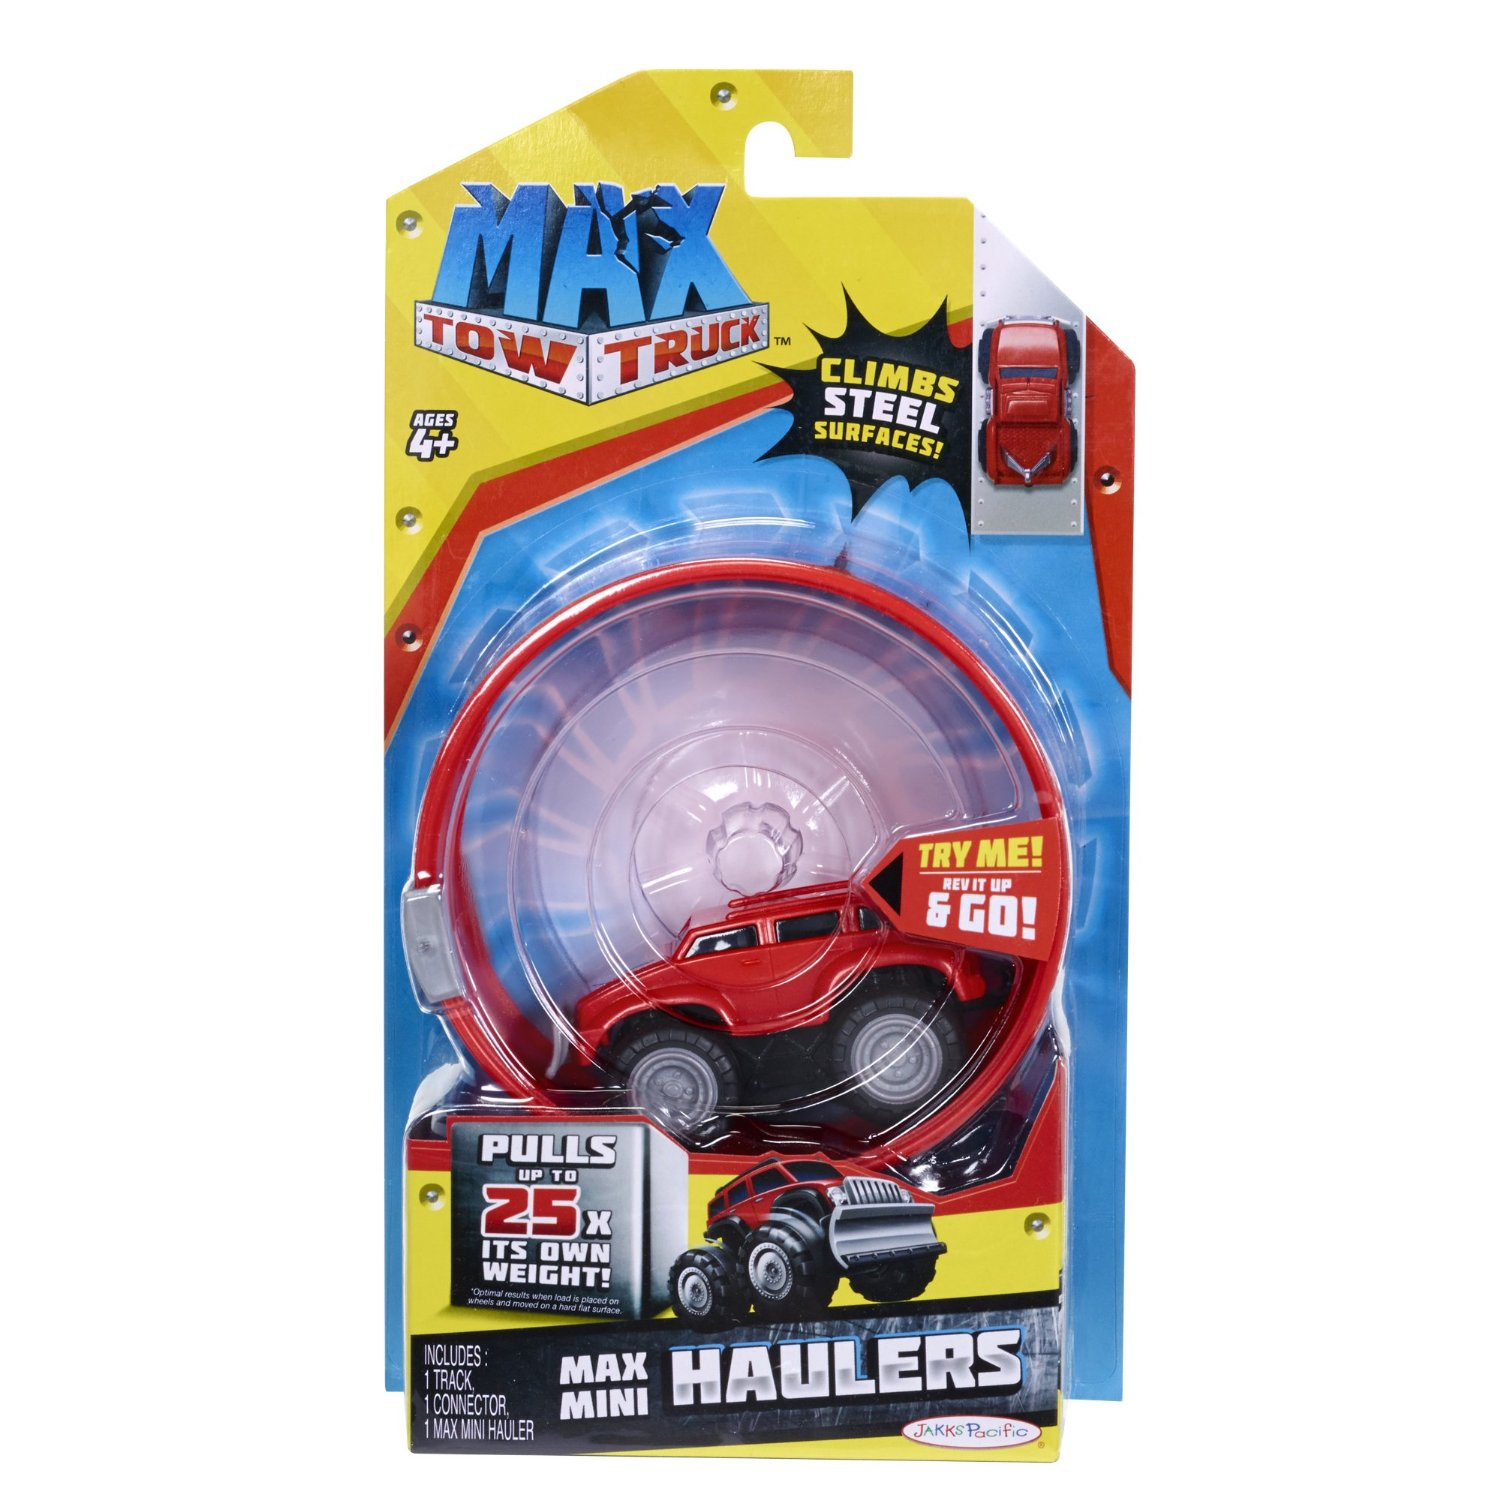 Max Tow Truck Mini Haulers Push, Body Style, Red - image 1 of 4